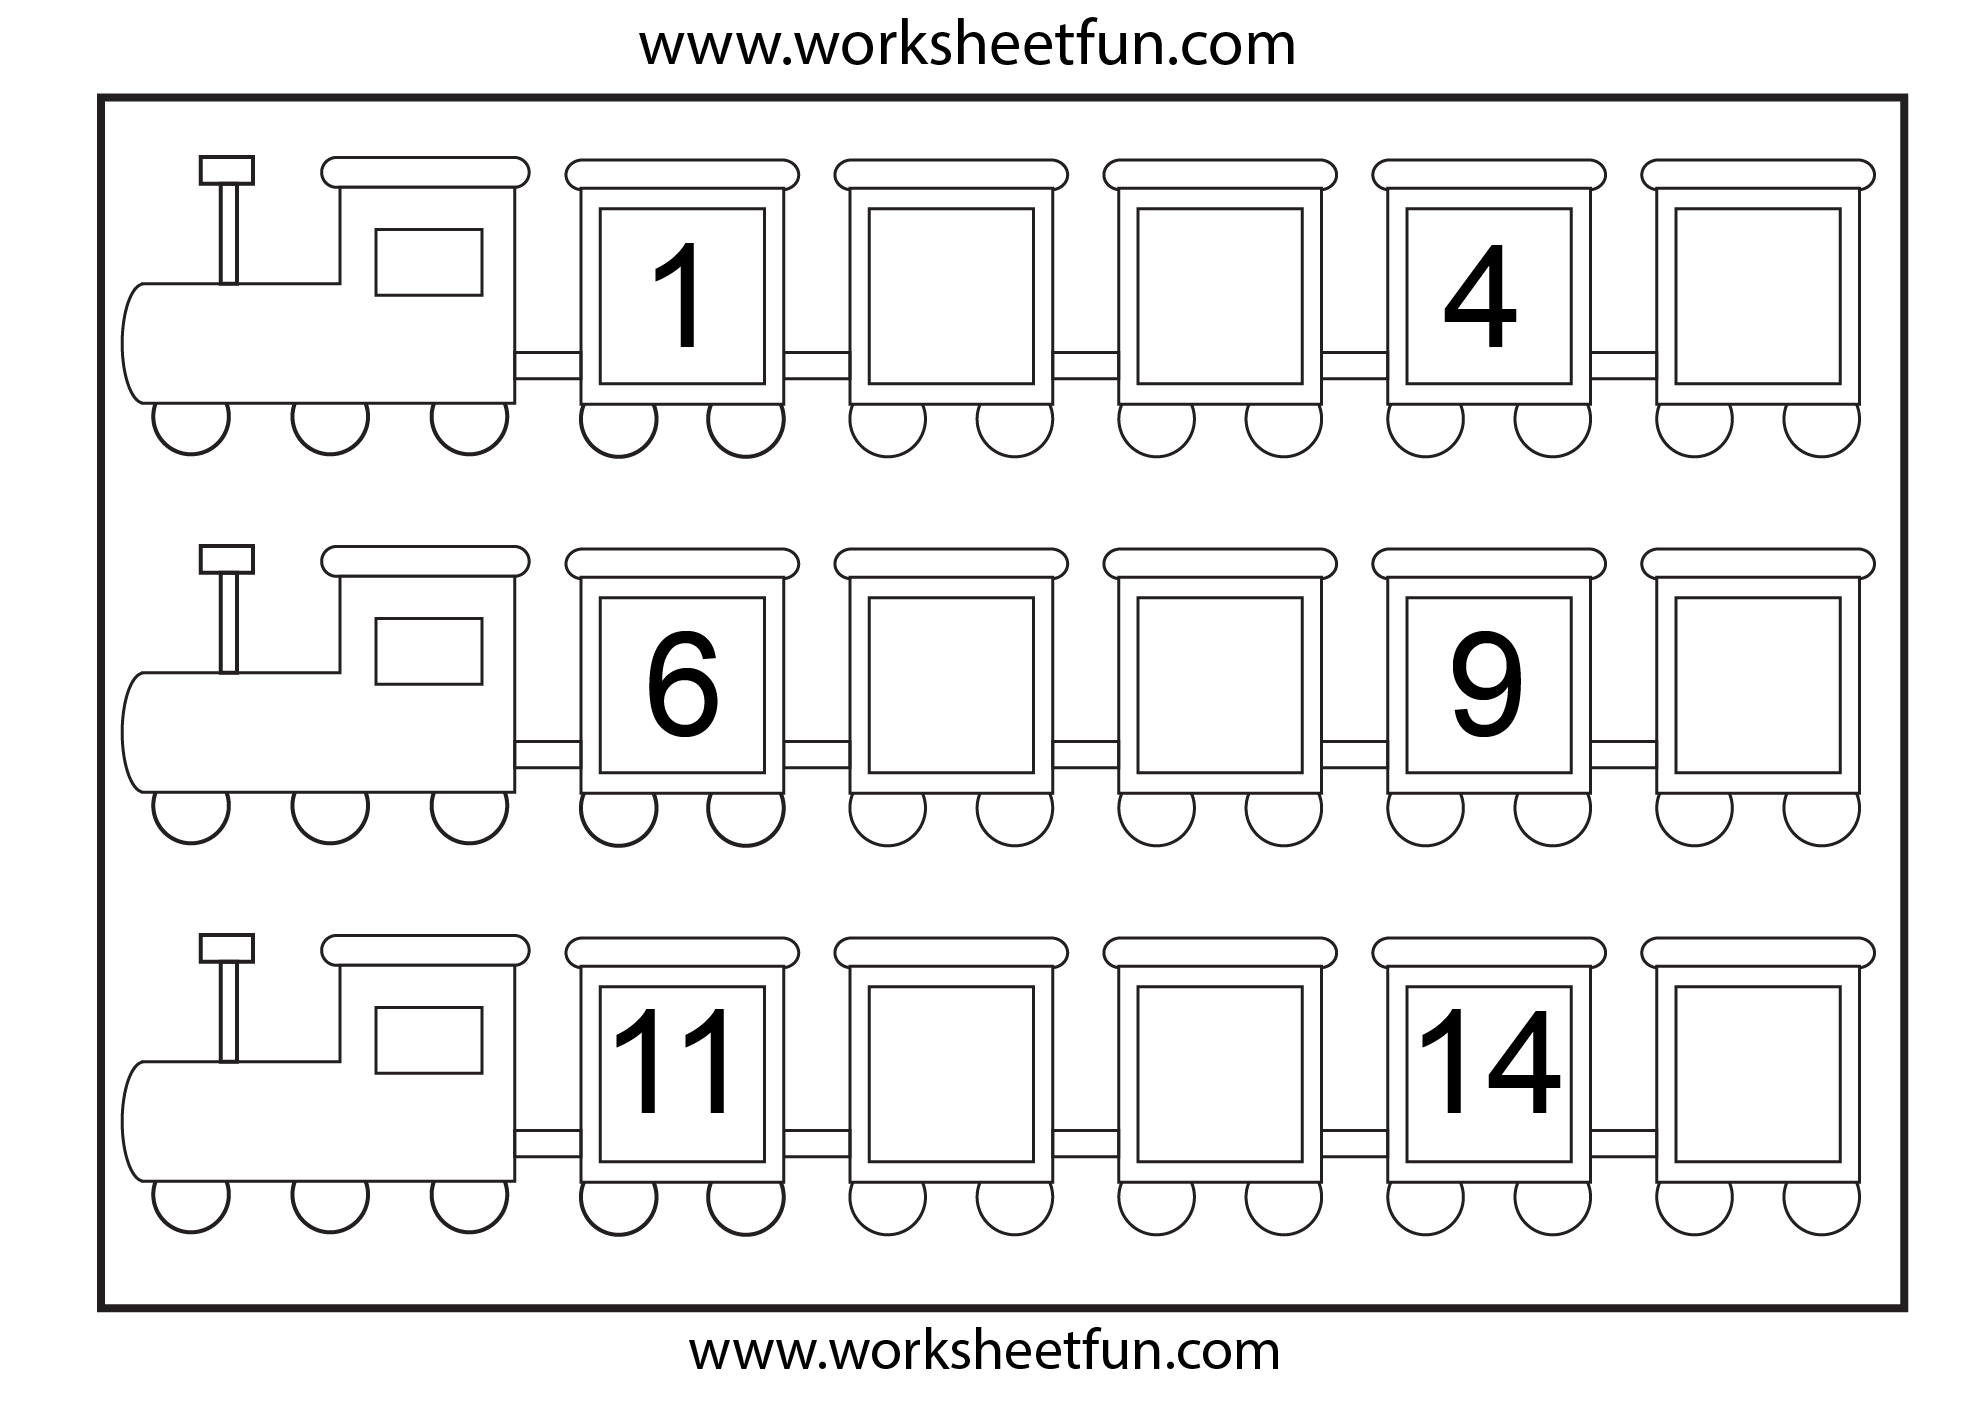 Missing Number Worksheet New 684 Missing Number